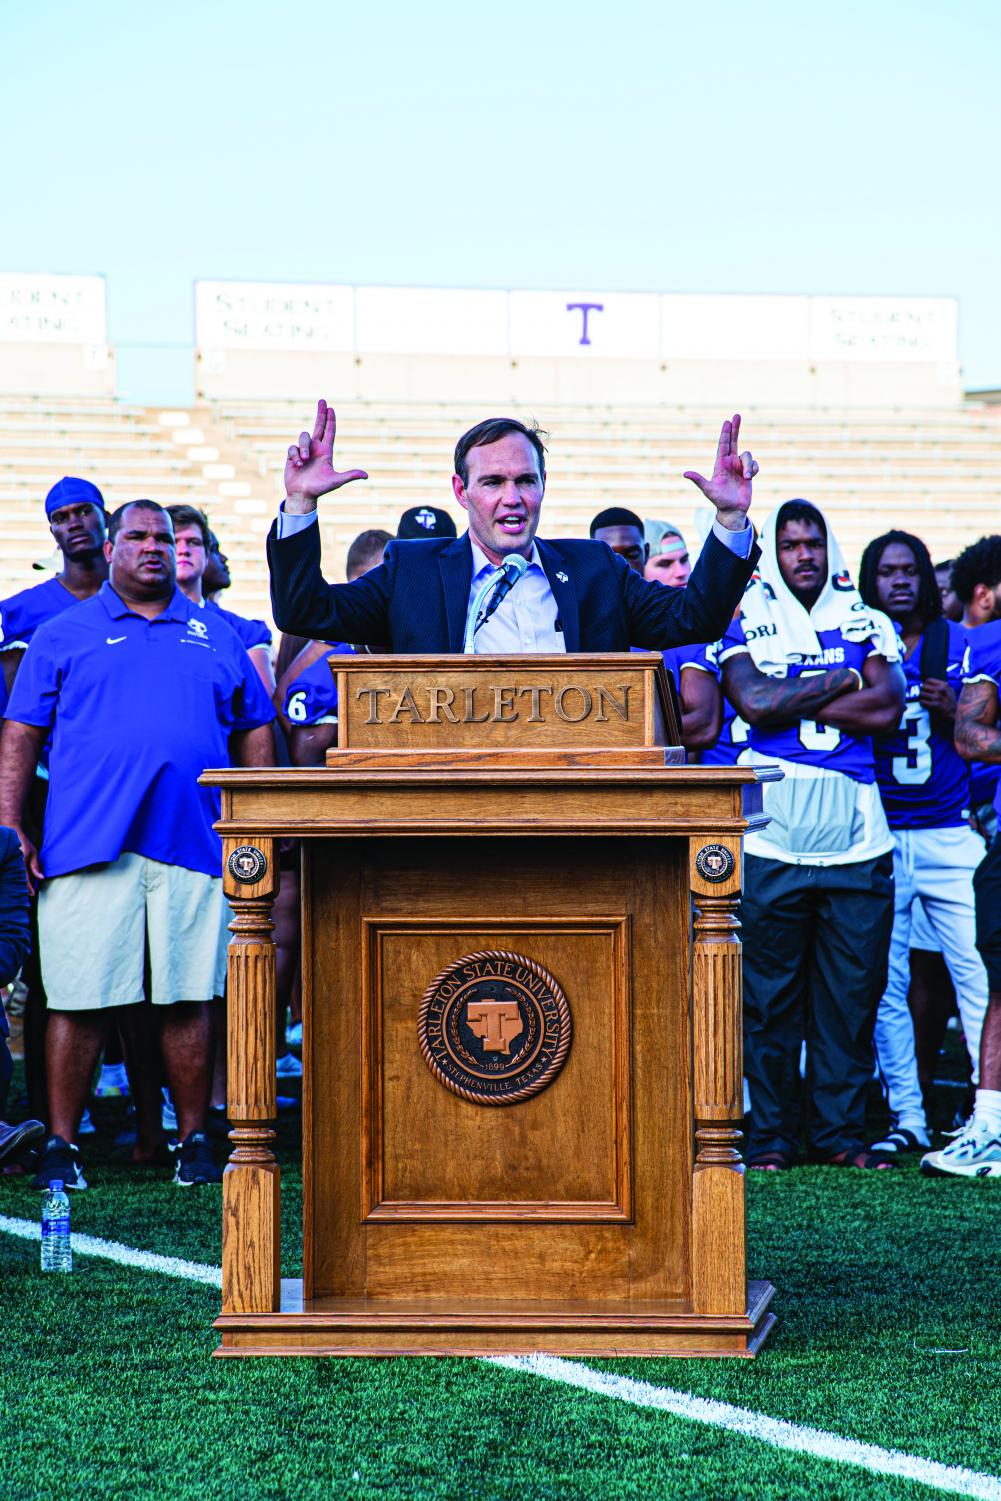 Hurley lays out plans for Tarleton